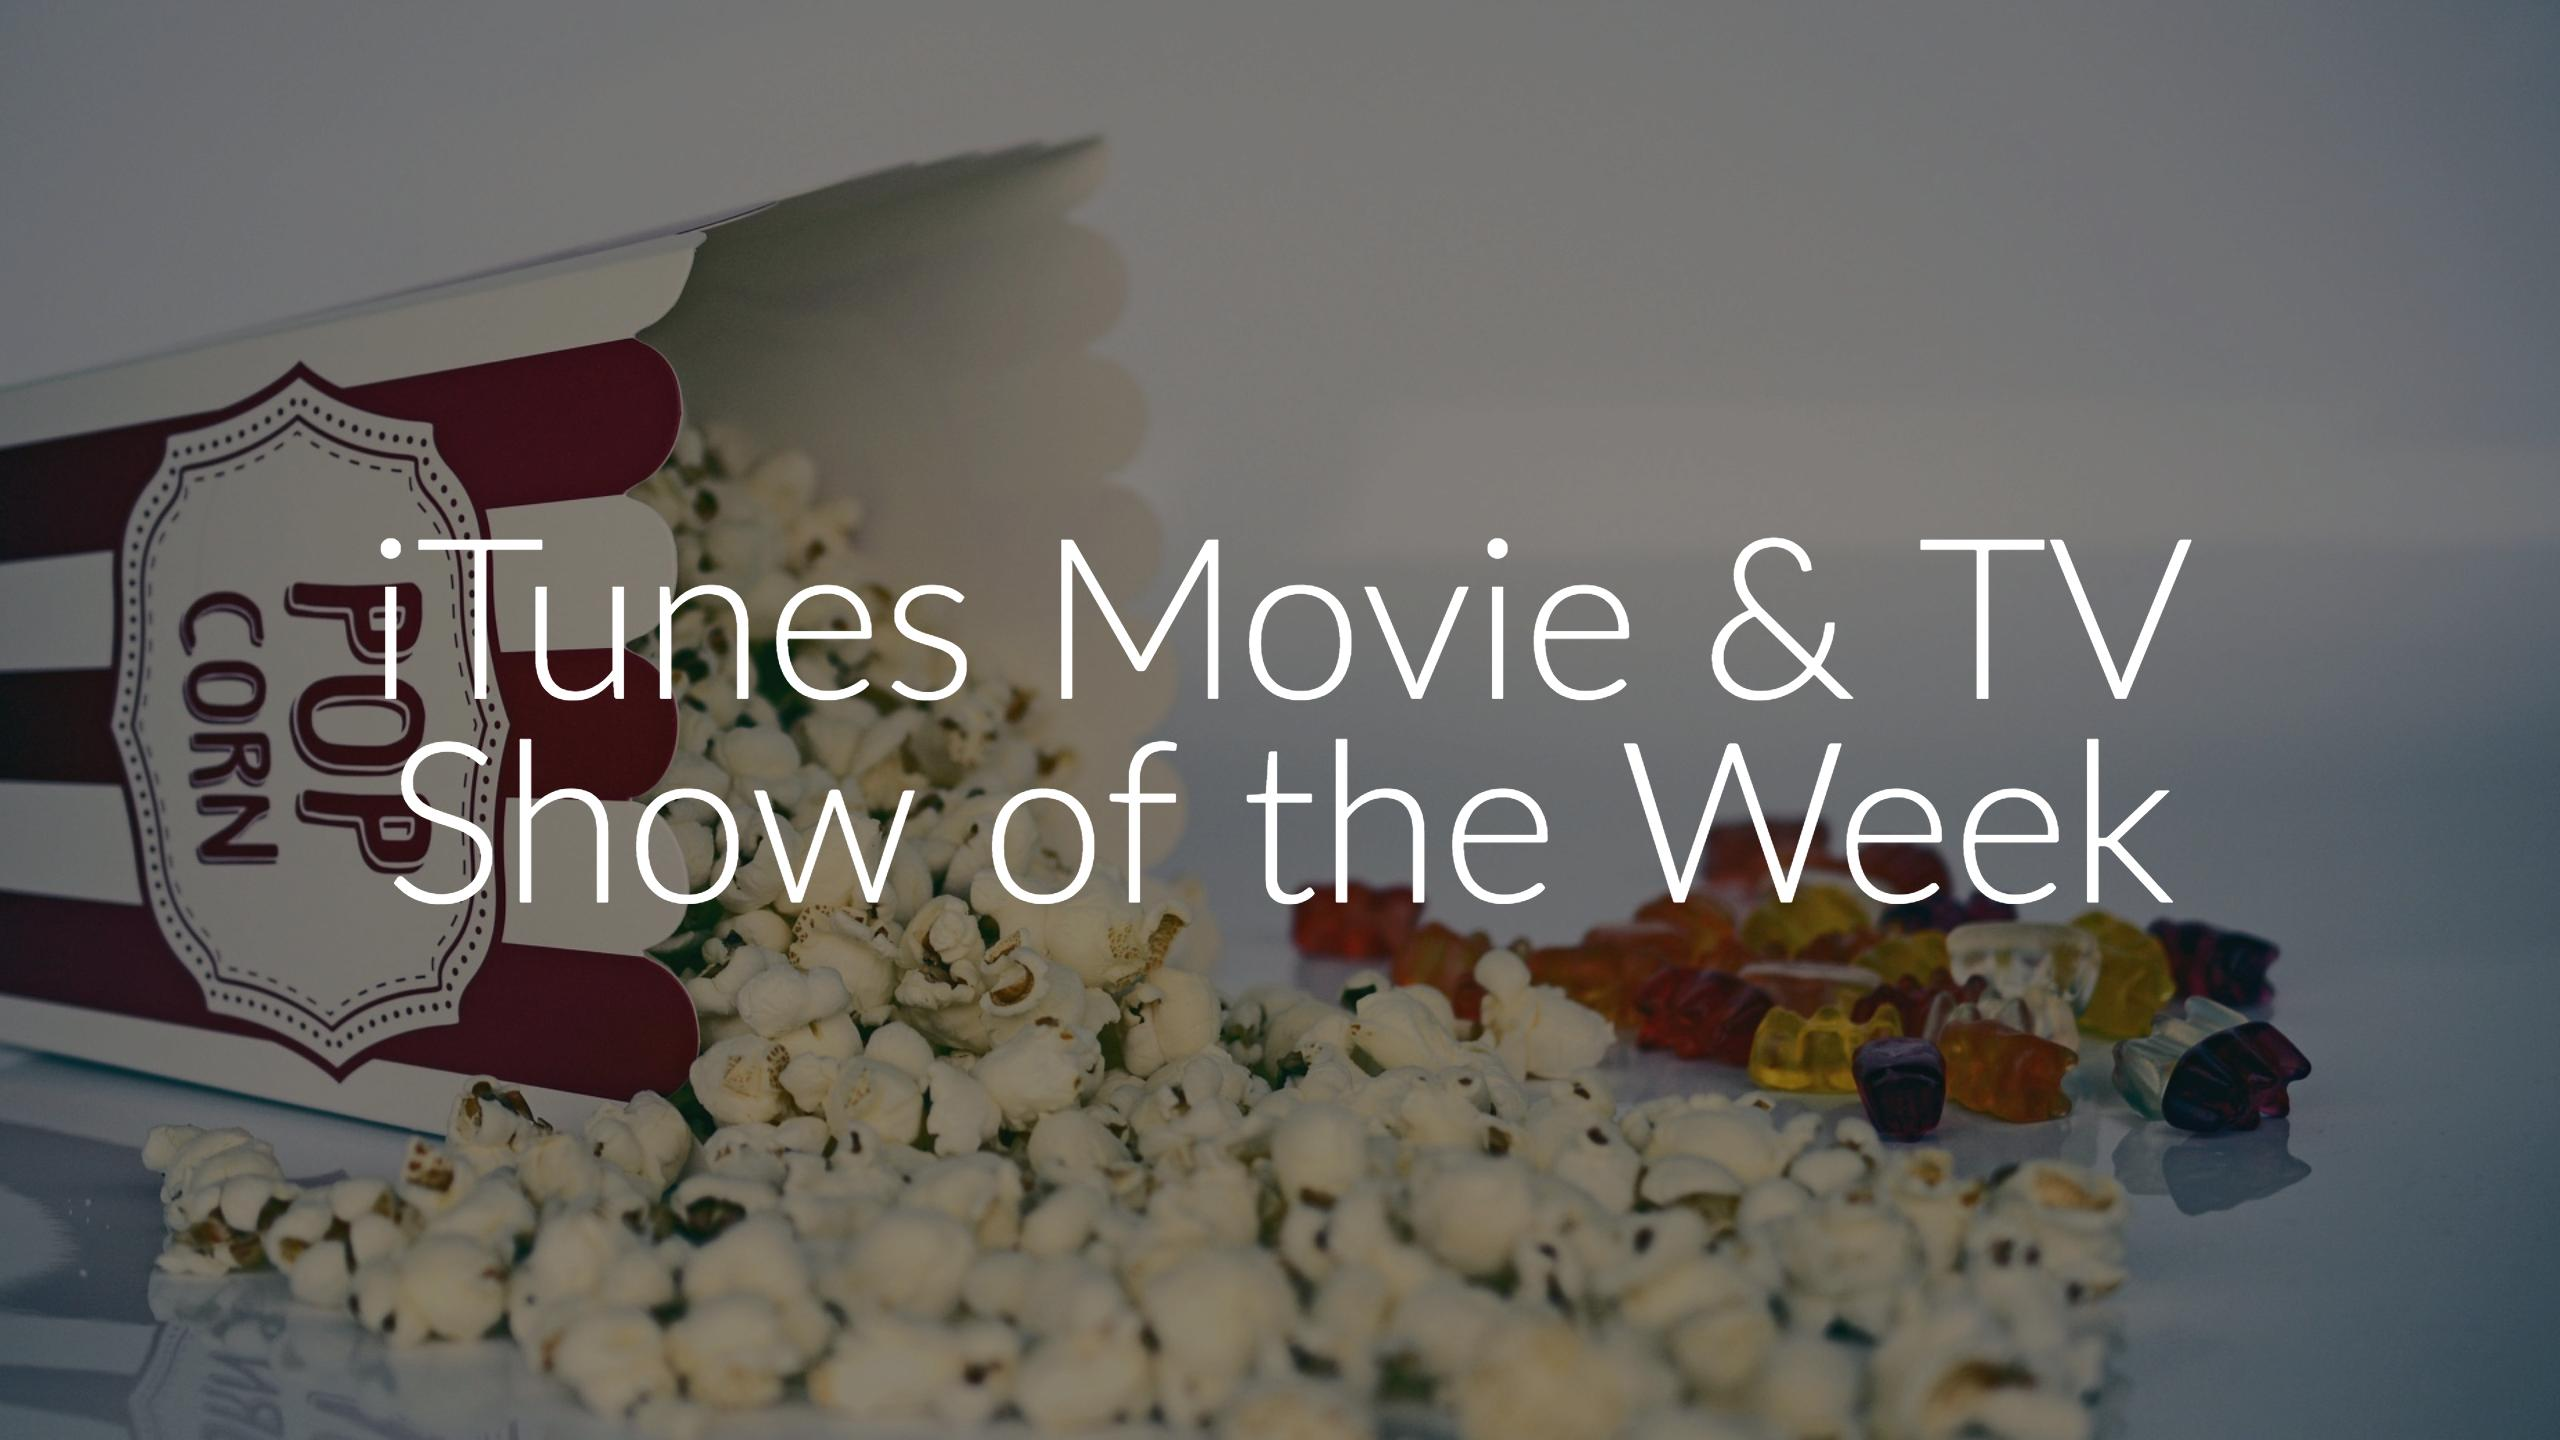 iTunes Movie & TV Show of the Week